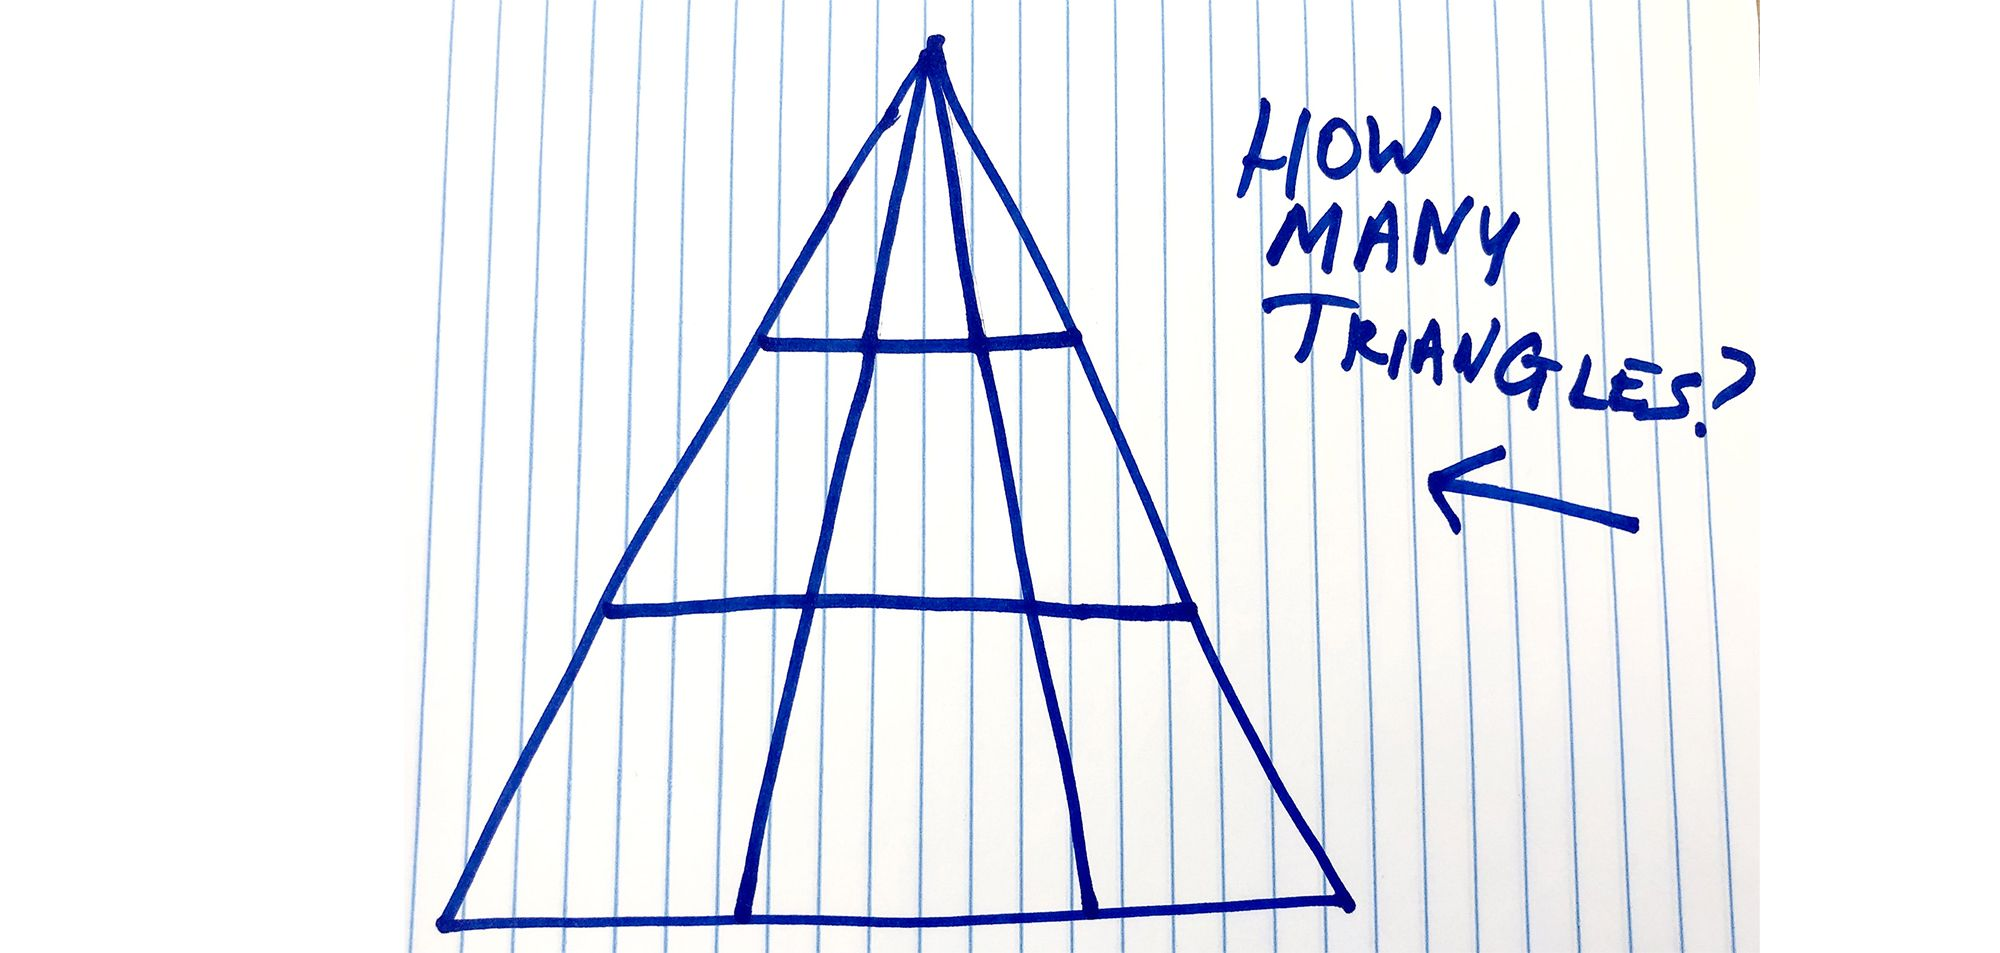 hight resolution of How Many Triangles Do You See - Viral Math Problem Triangle